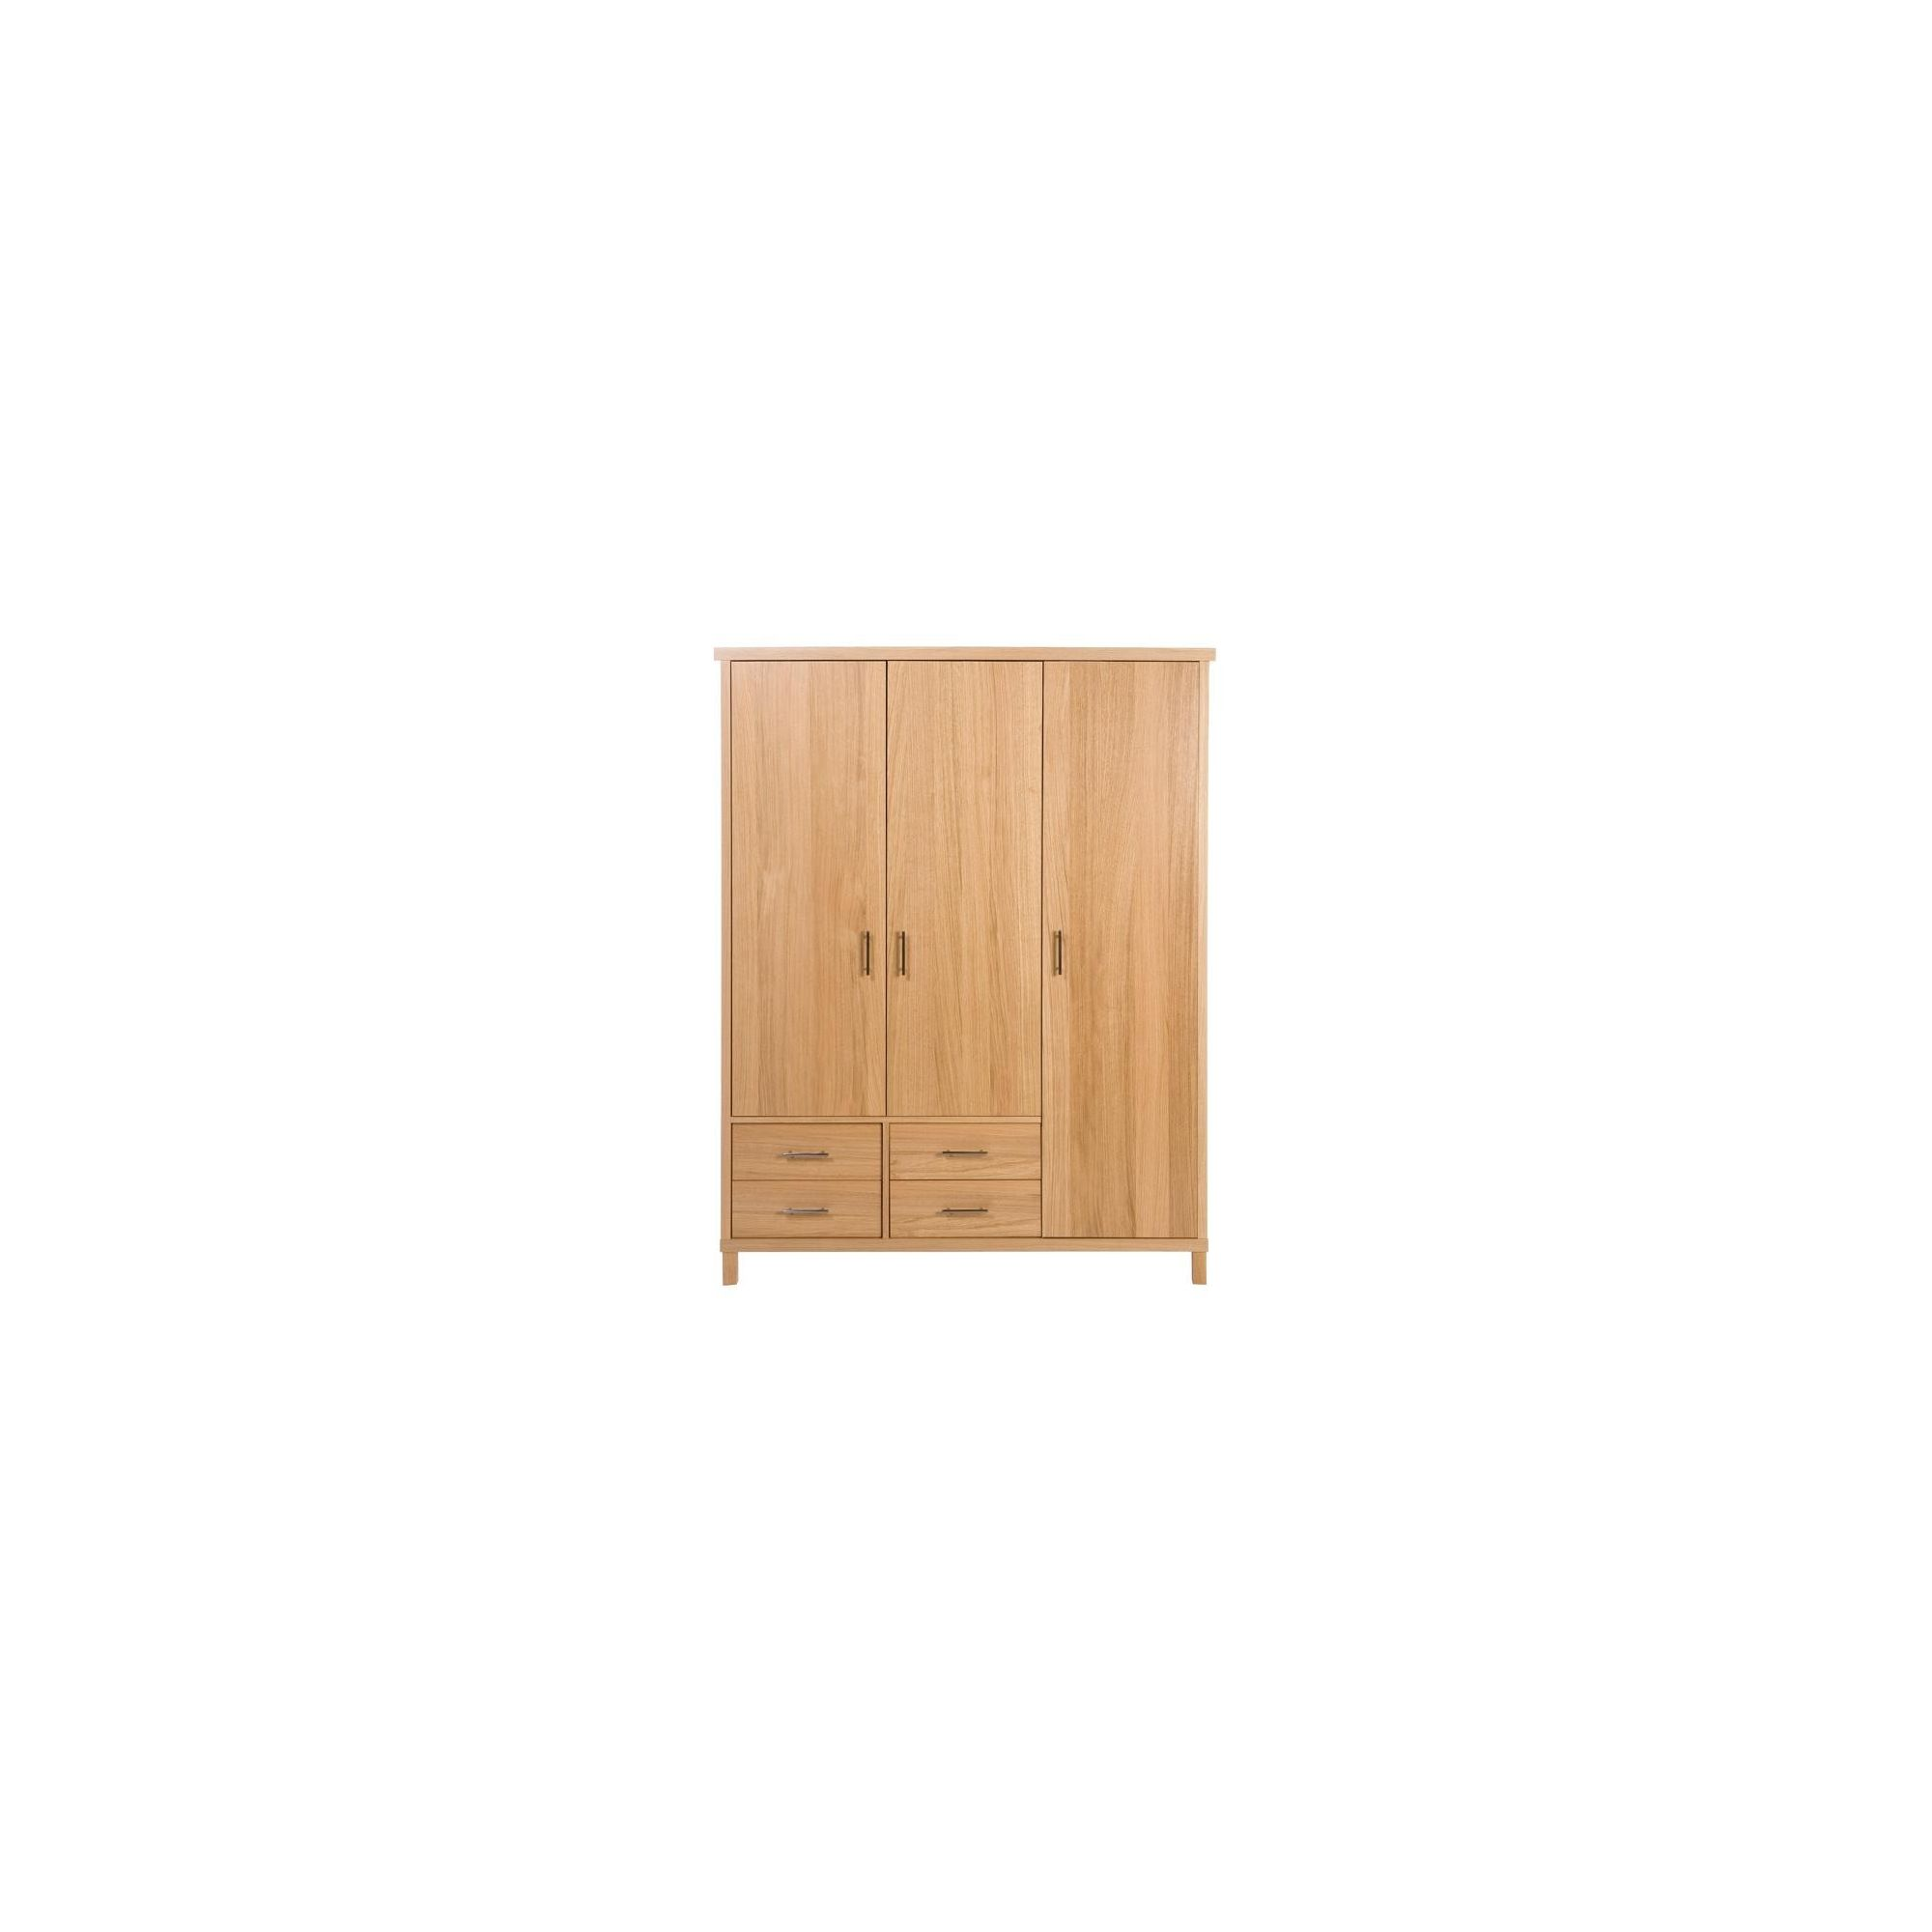 Urbane Designs Vettori Oak Bedroom 3 Door 4 Drawer Wardrobe at Tesco Direct